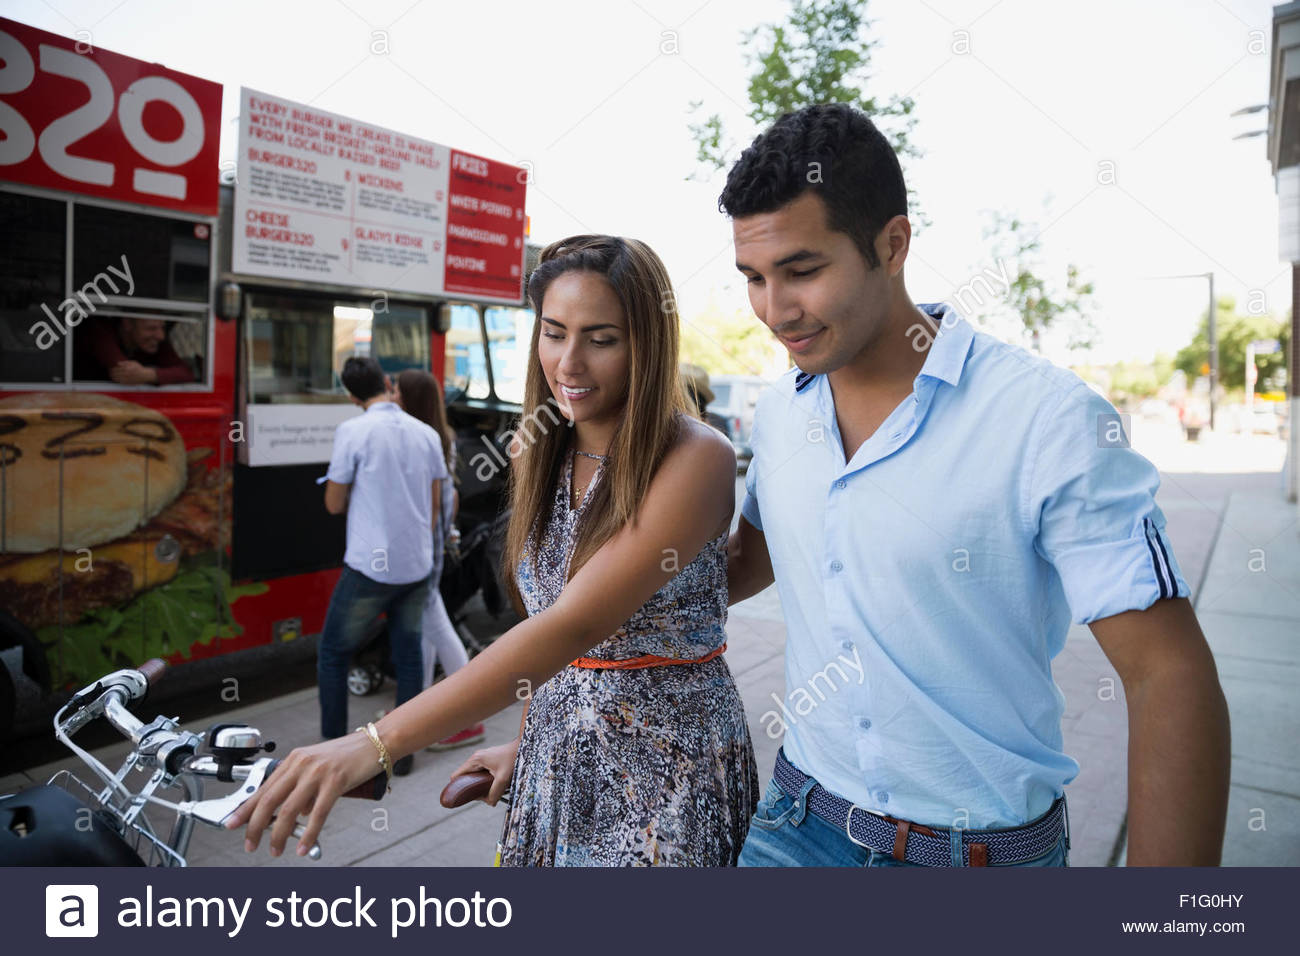 Couple with bicycle walking outside food truck - Stock Image